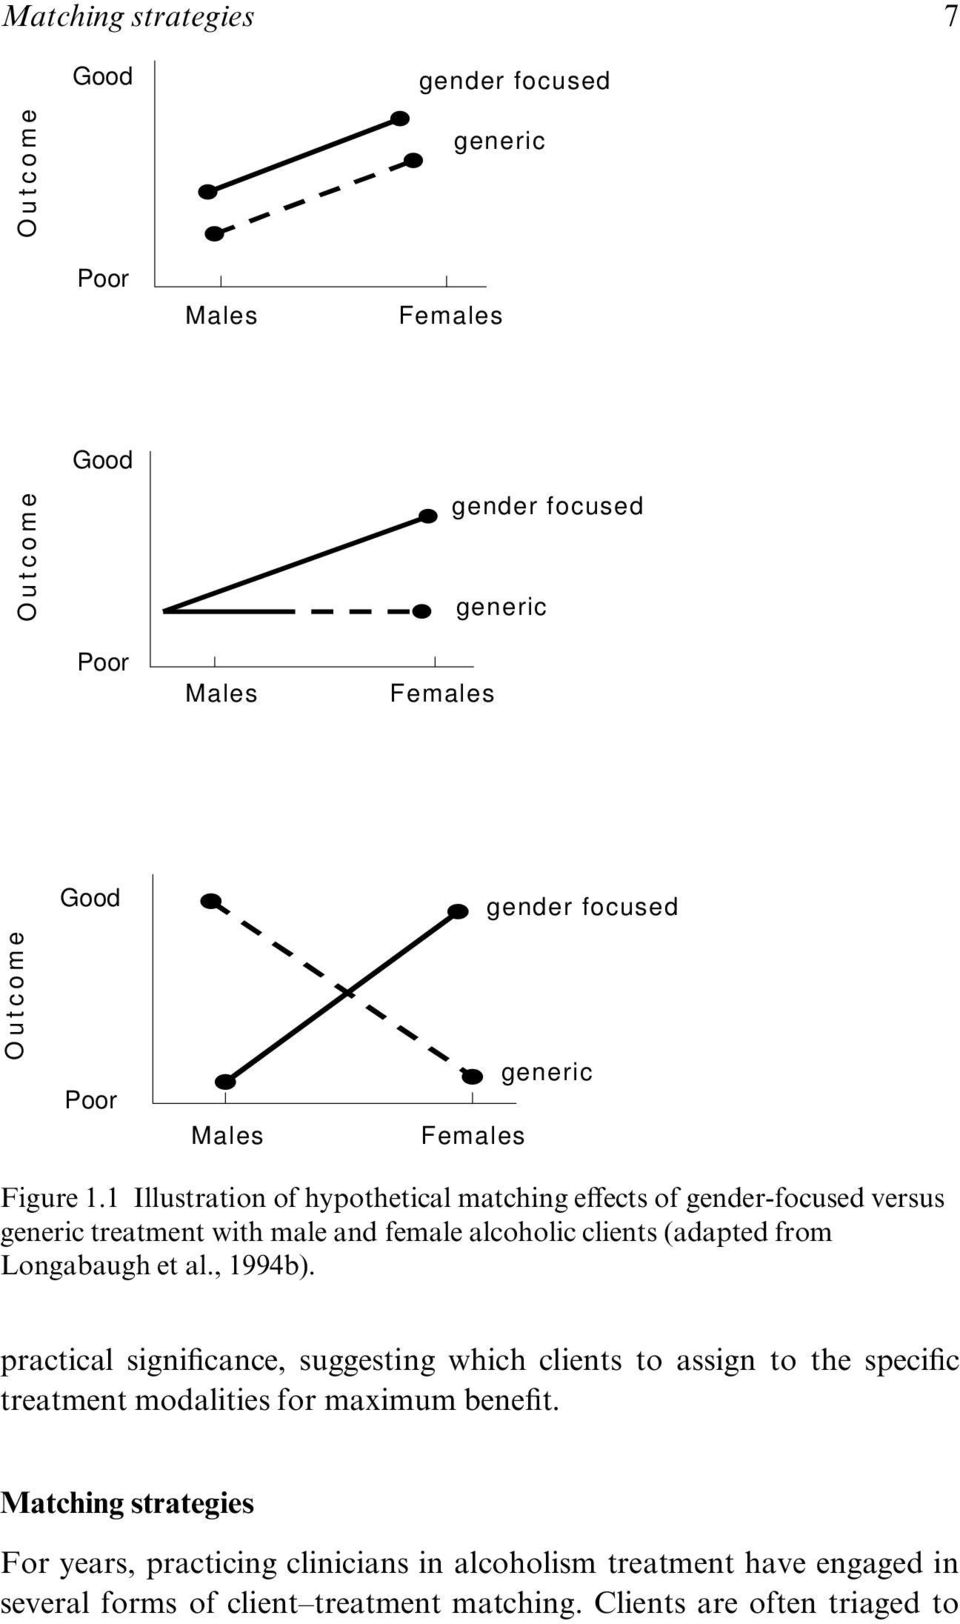 1 Illustration of hypothetical matching effects of gender-focused versus generic treatment with male and female alcoholic clients (adapted from Longabaugh et al.